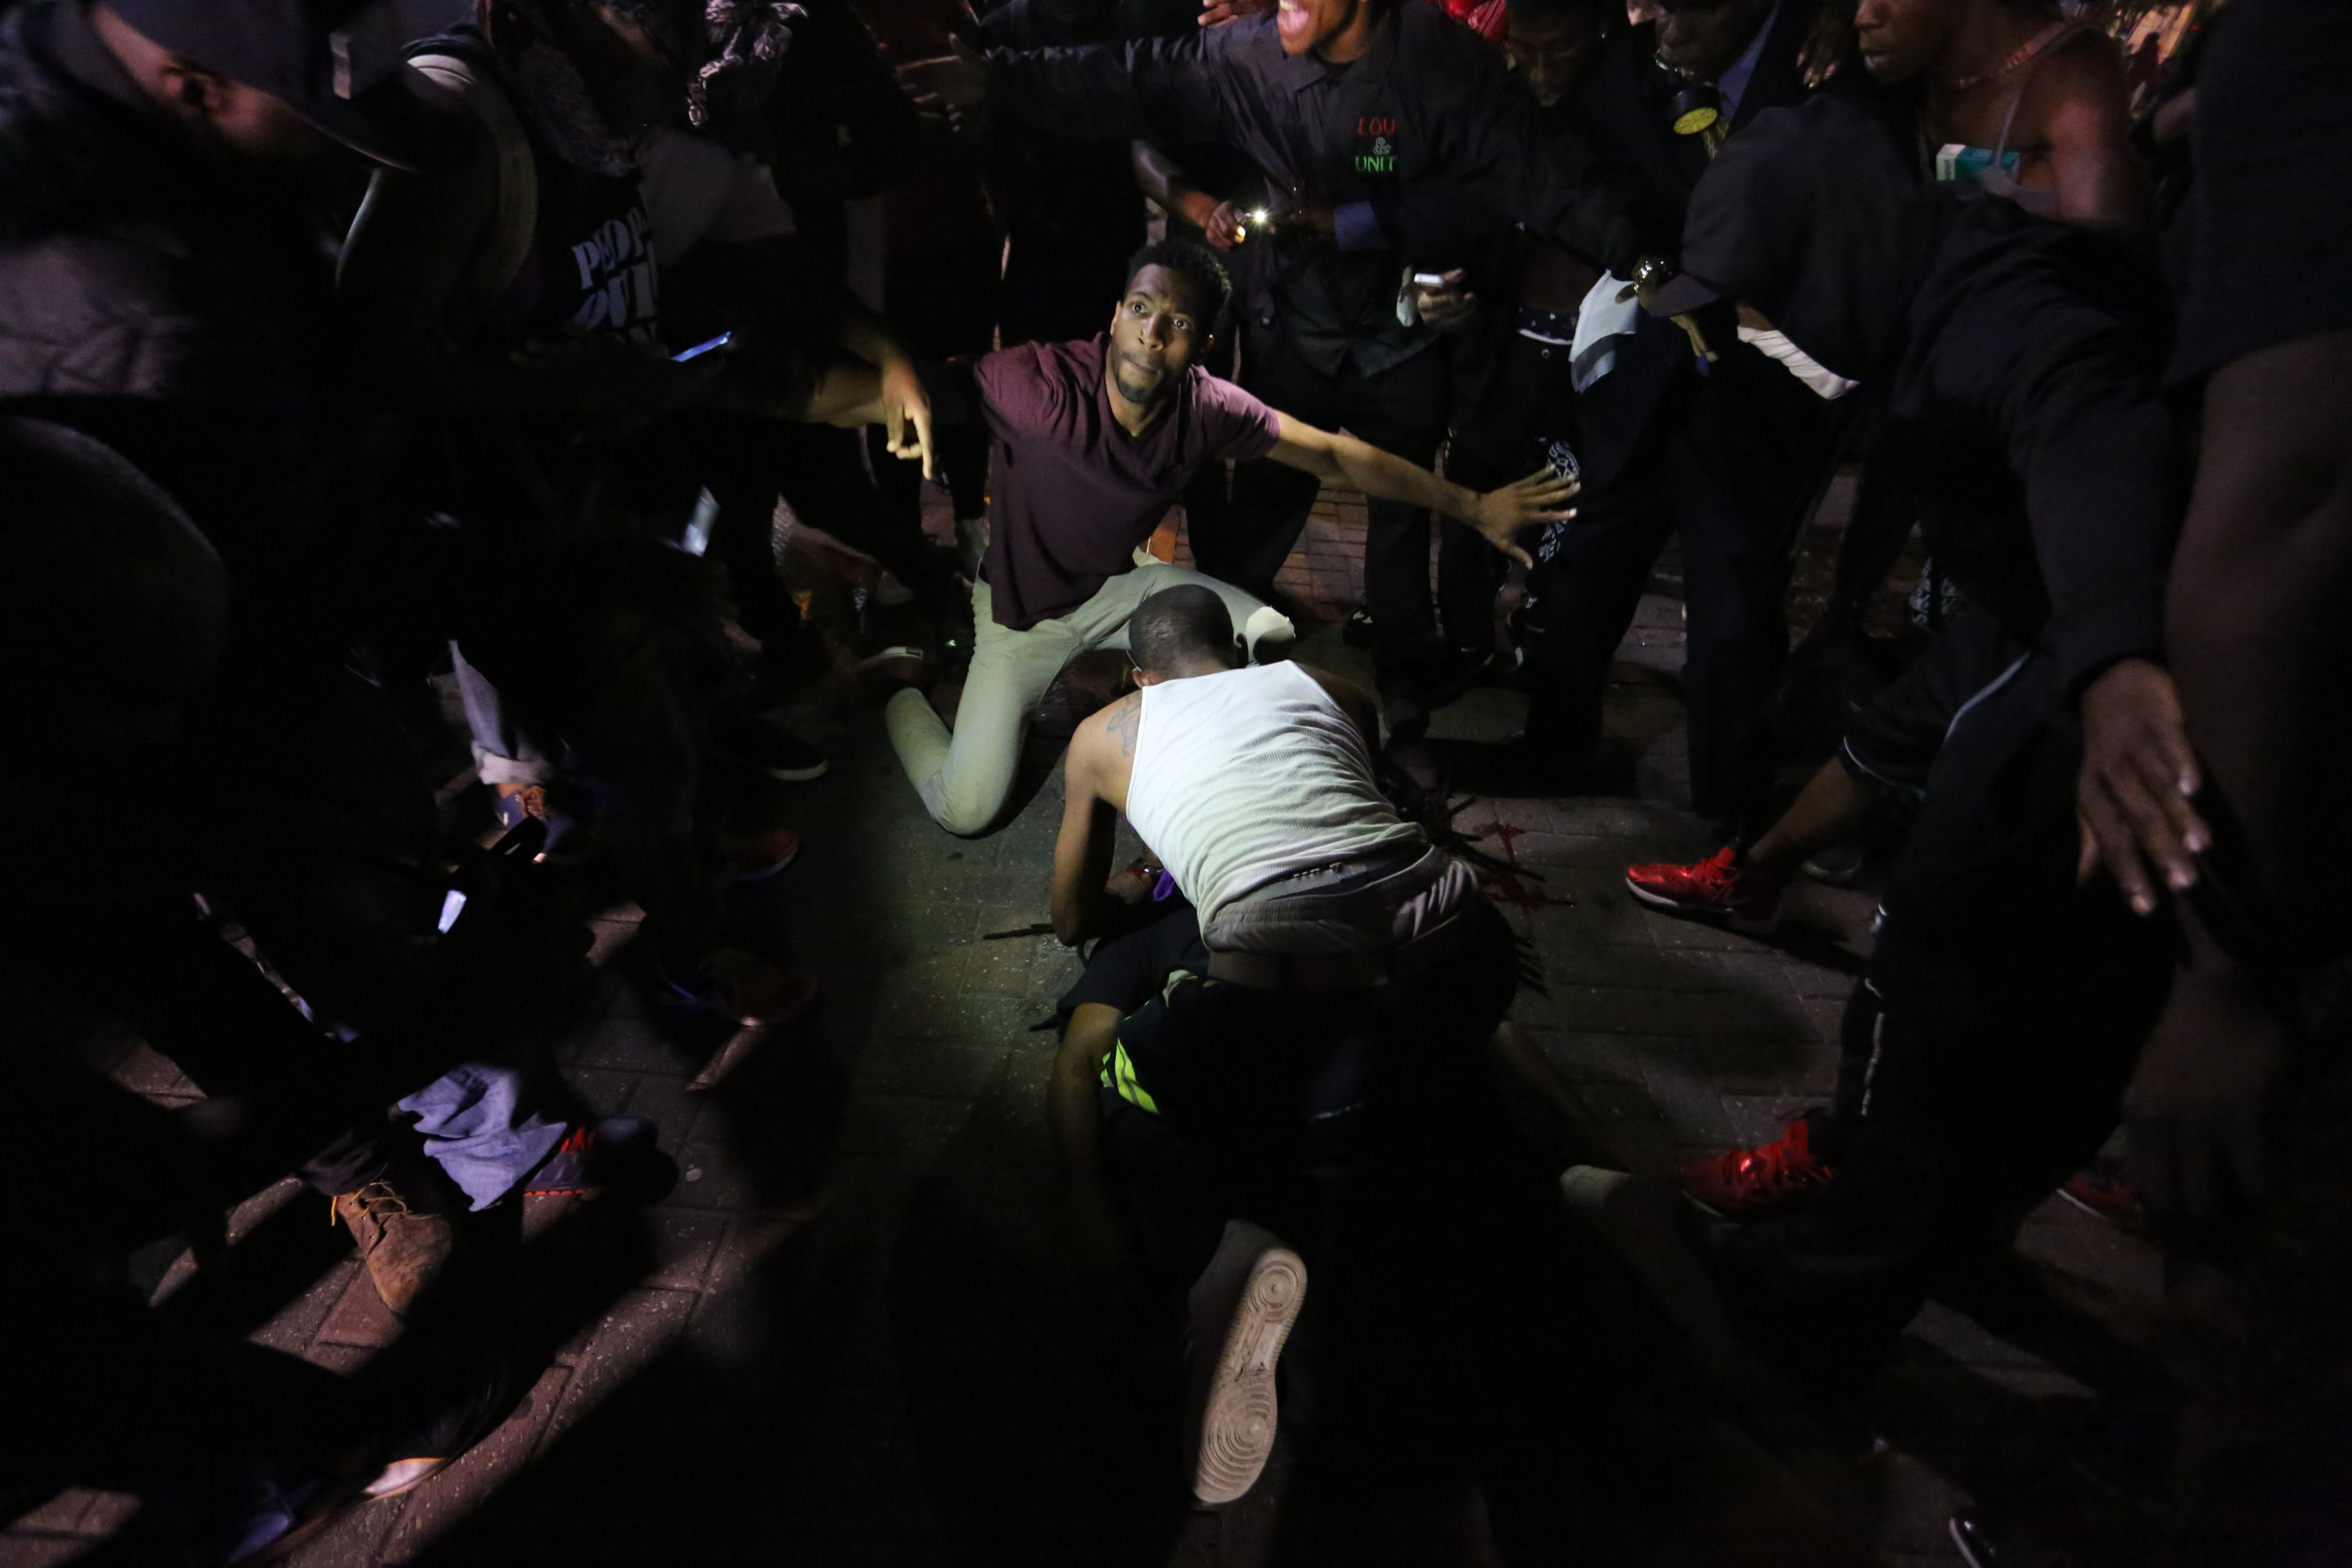 A young man is attended to as he lies on the sidewalk after being shot in front of the Omni Hotel in downtown Charlotte, N.C., Sept. 21, 2016.